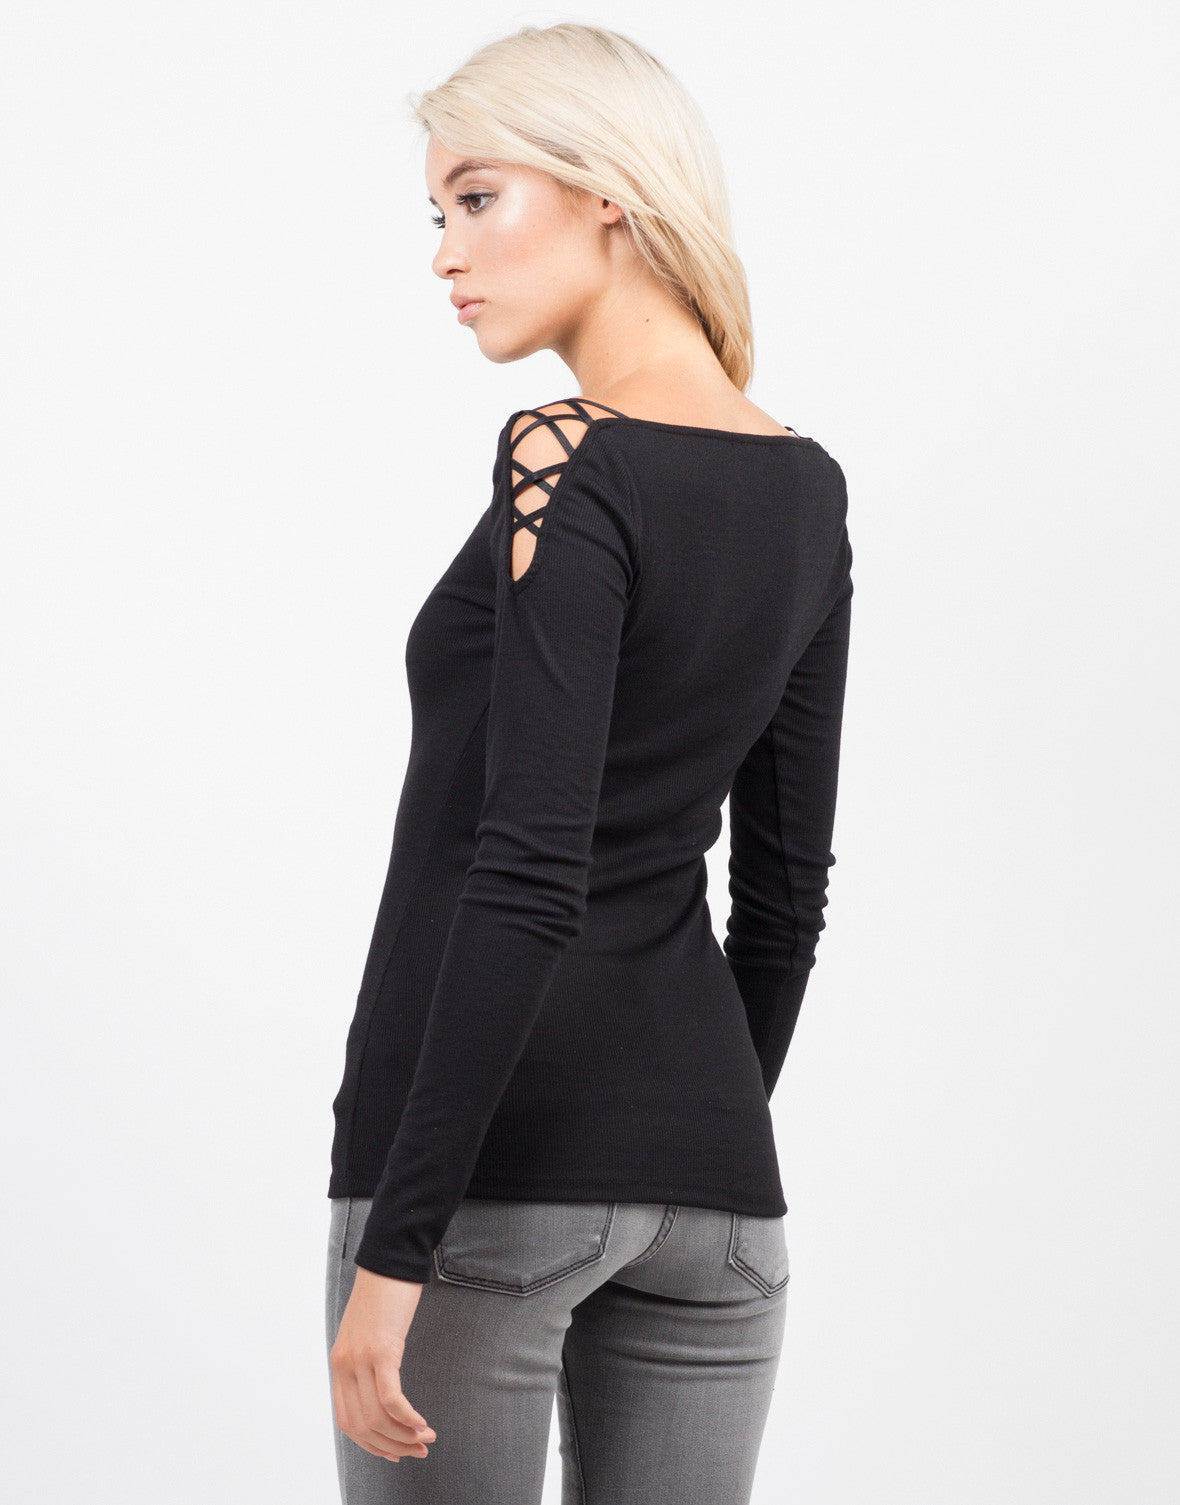 Back View of Strappy Long Sleeve Ribbed Top